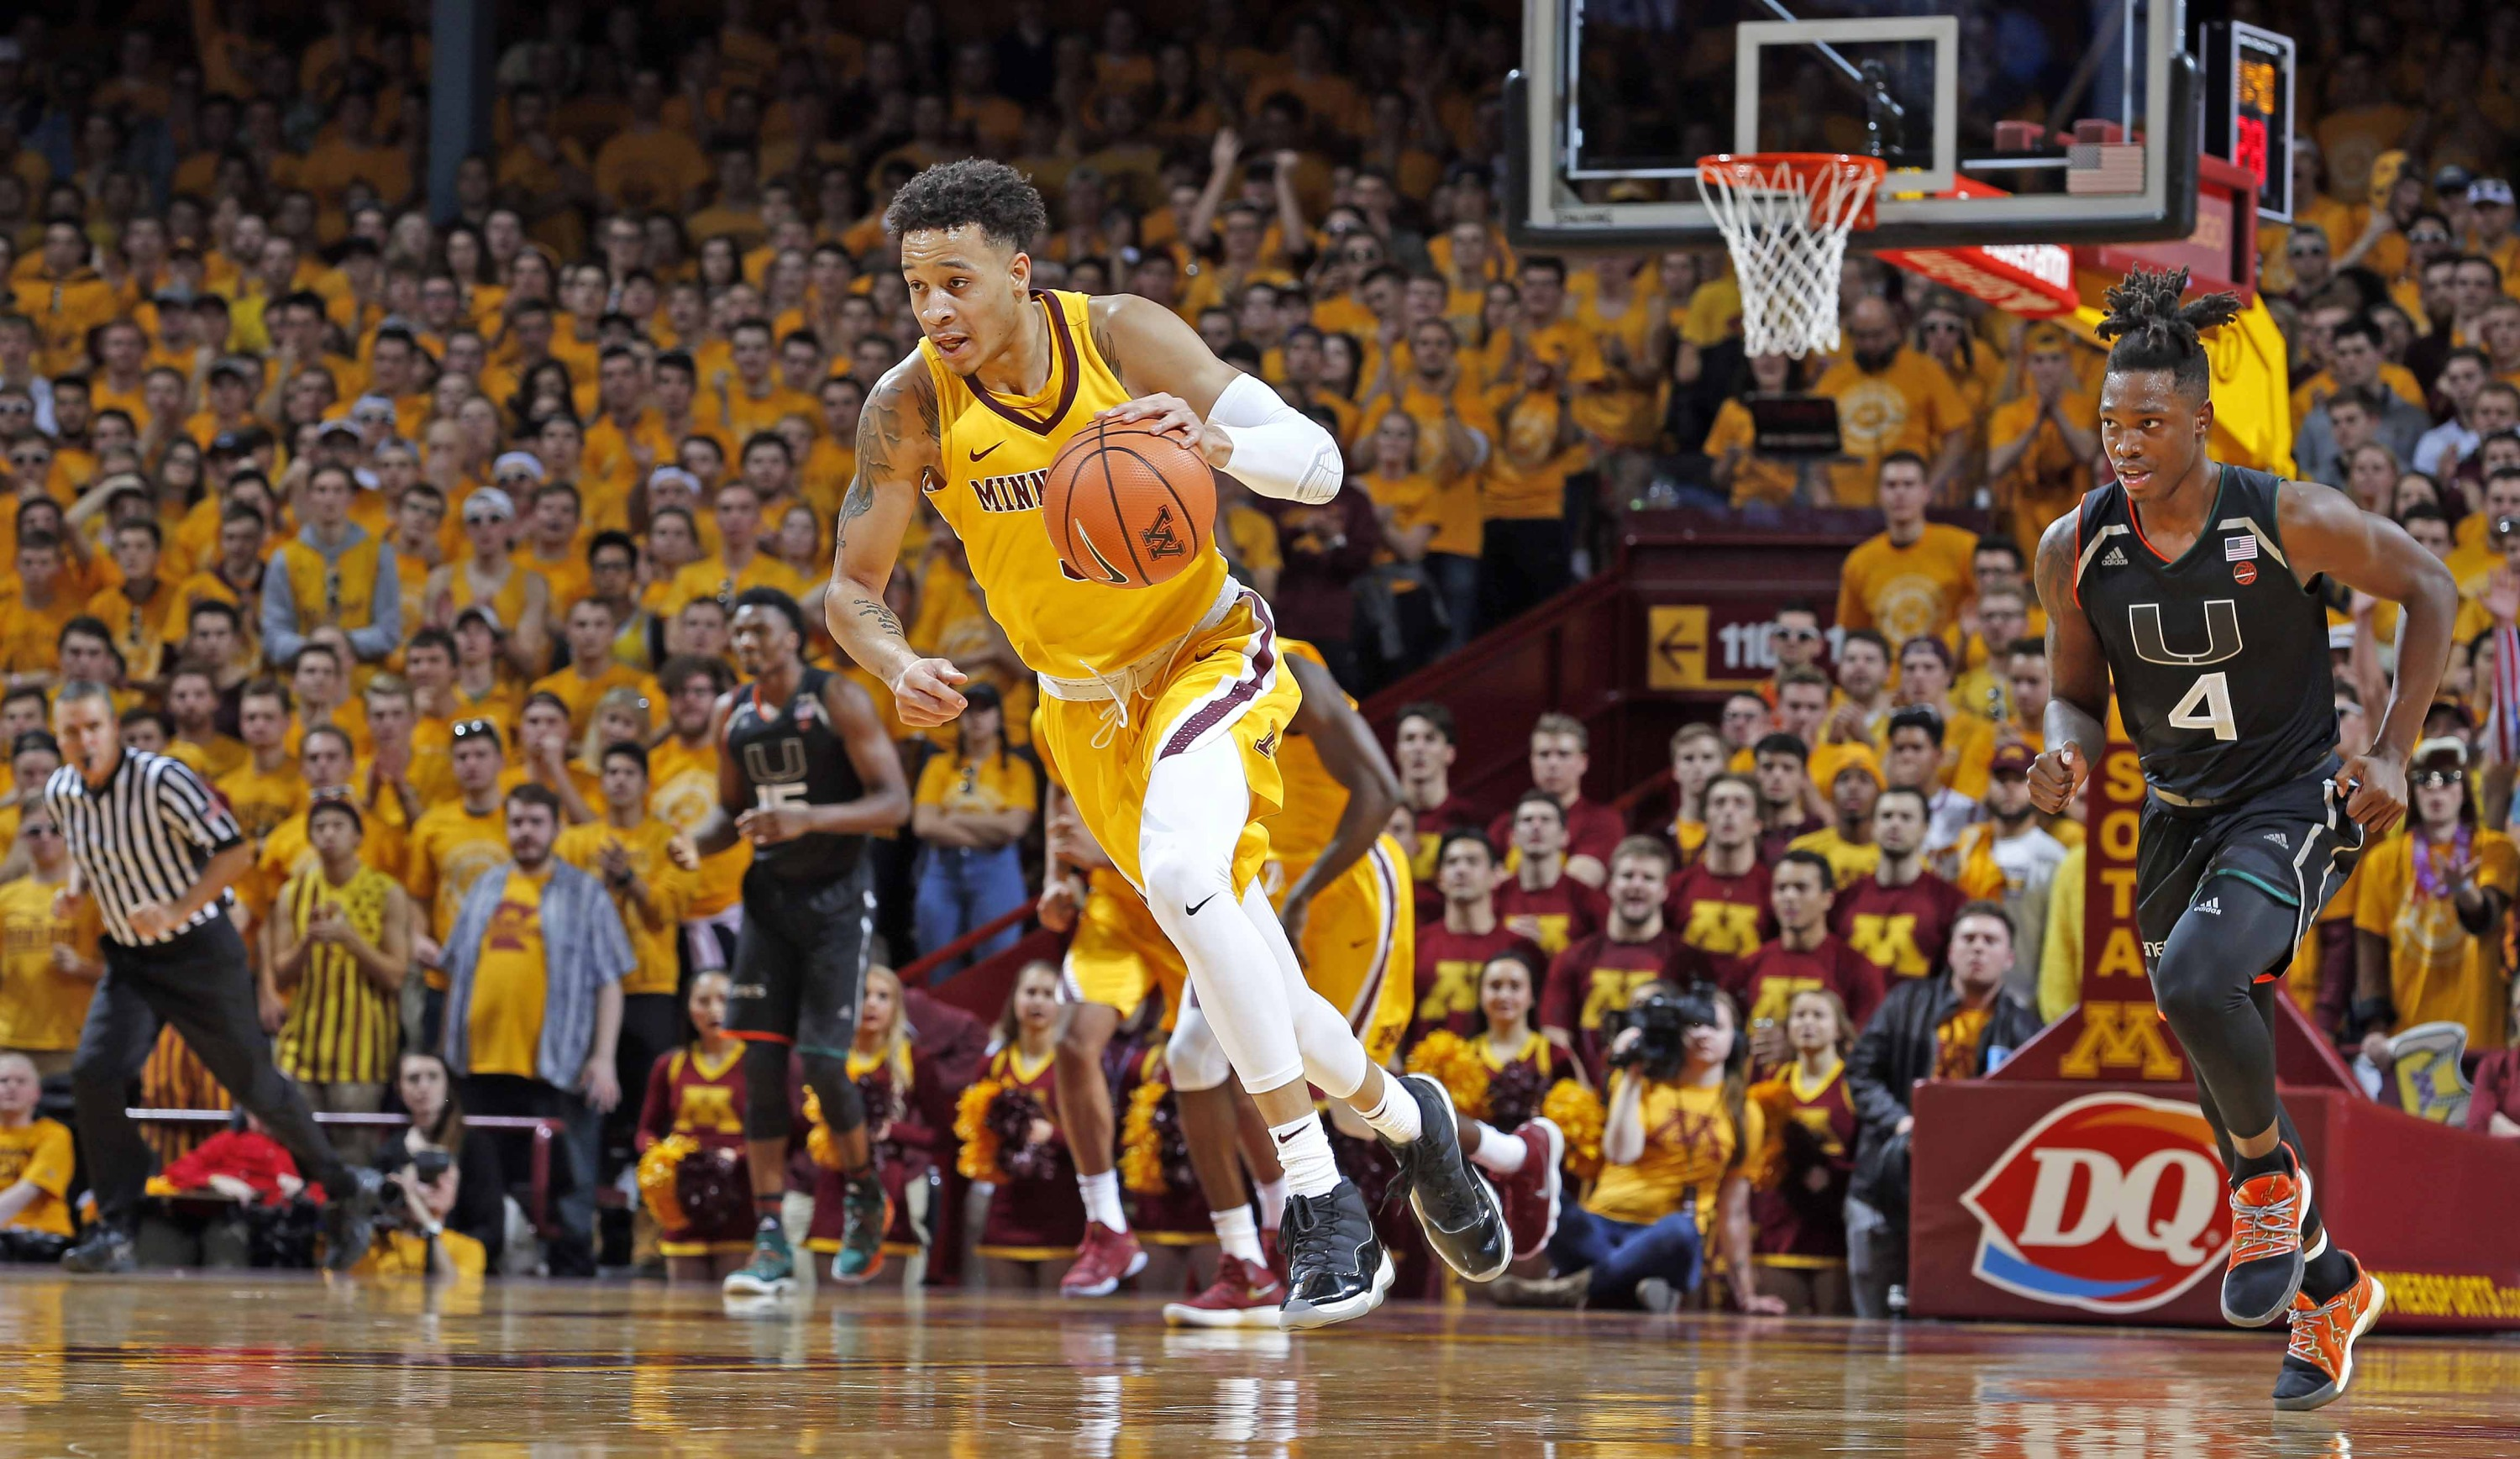 gophers to visit boston college in acc/b1g challenge - university of